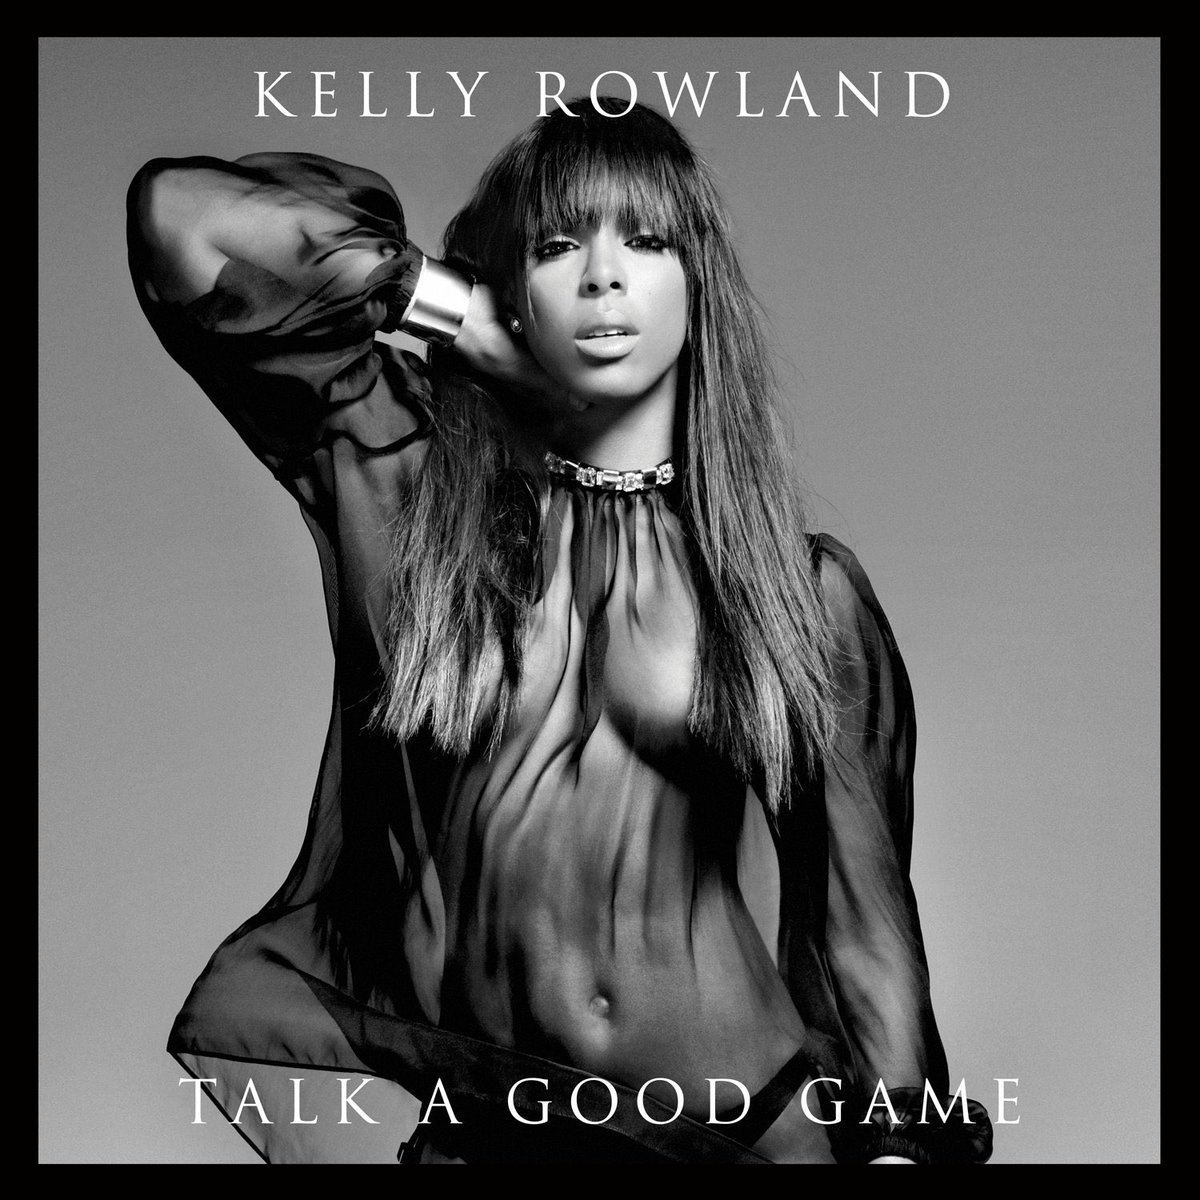 #FBF Today marks the 6th anniversary of 'Talk a Good Game'. What was your favorite track? https://t.co/skdr6hjoLY